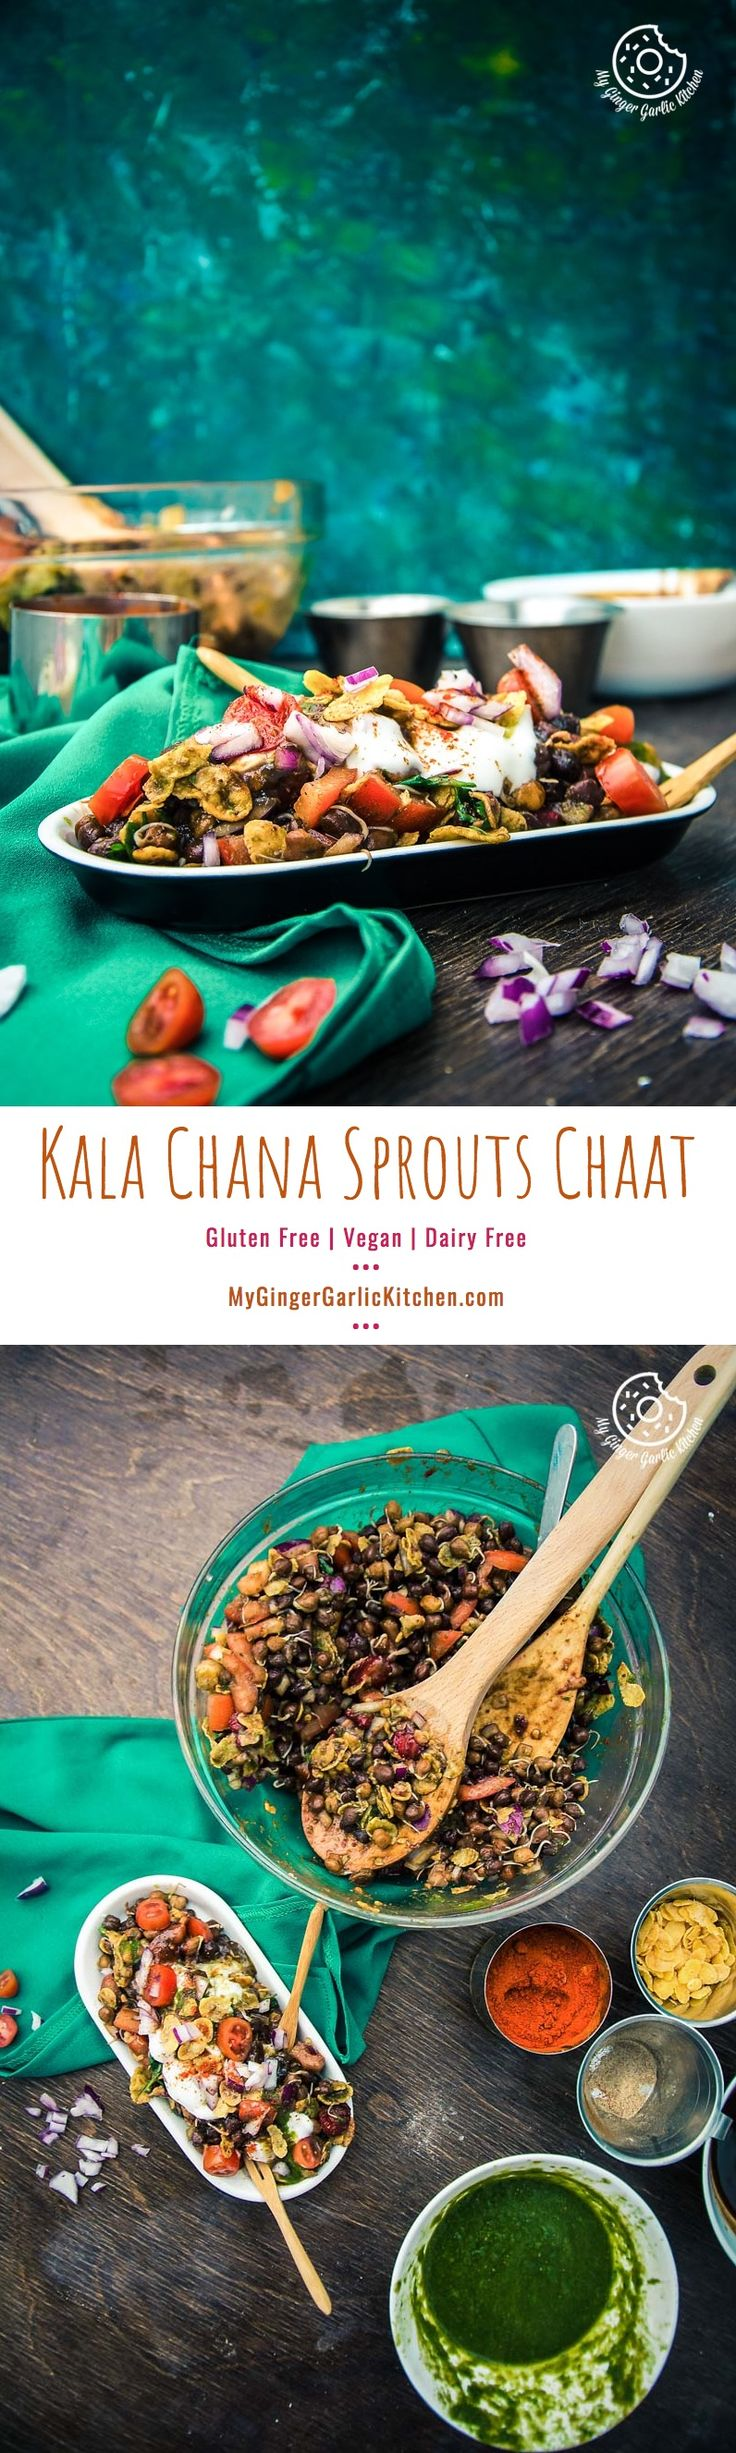 This Vegan and Gluten Free Kala Chana Sprouts Chaat | Black Chickpeas Chaat Recipe is overflowing with the combo of deliciousness and good health. From mygingergarlickitchen.com